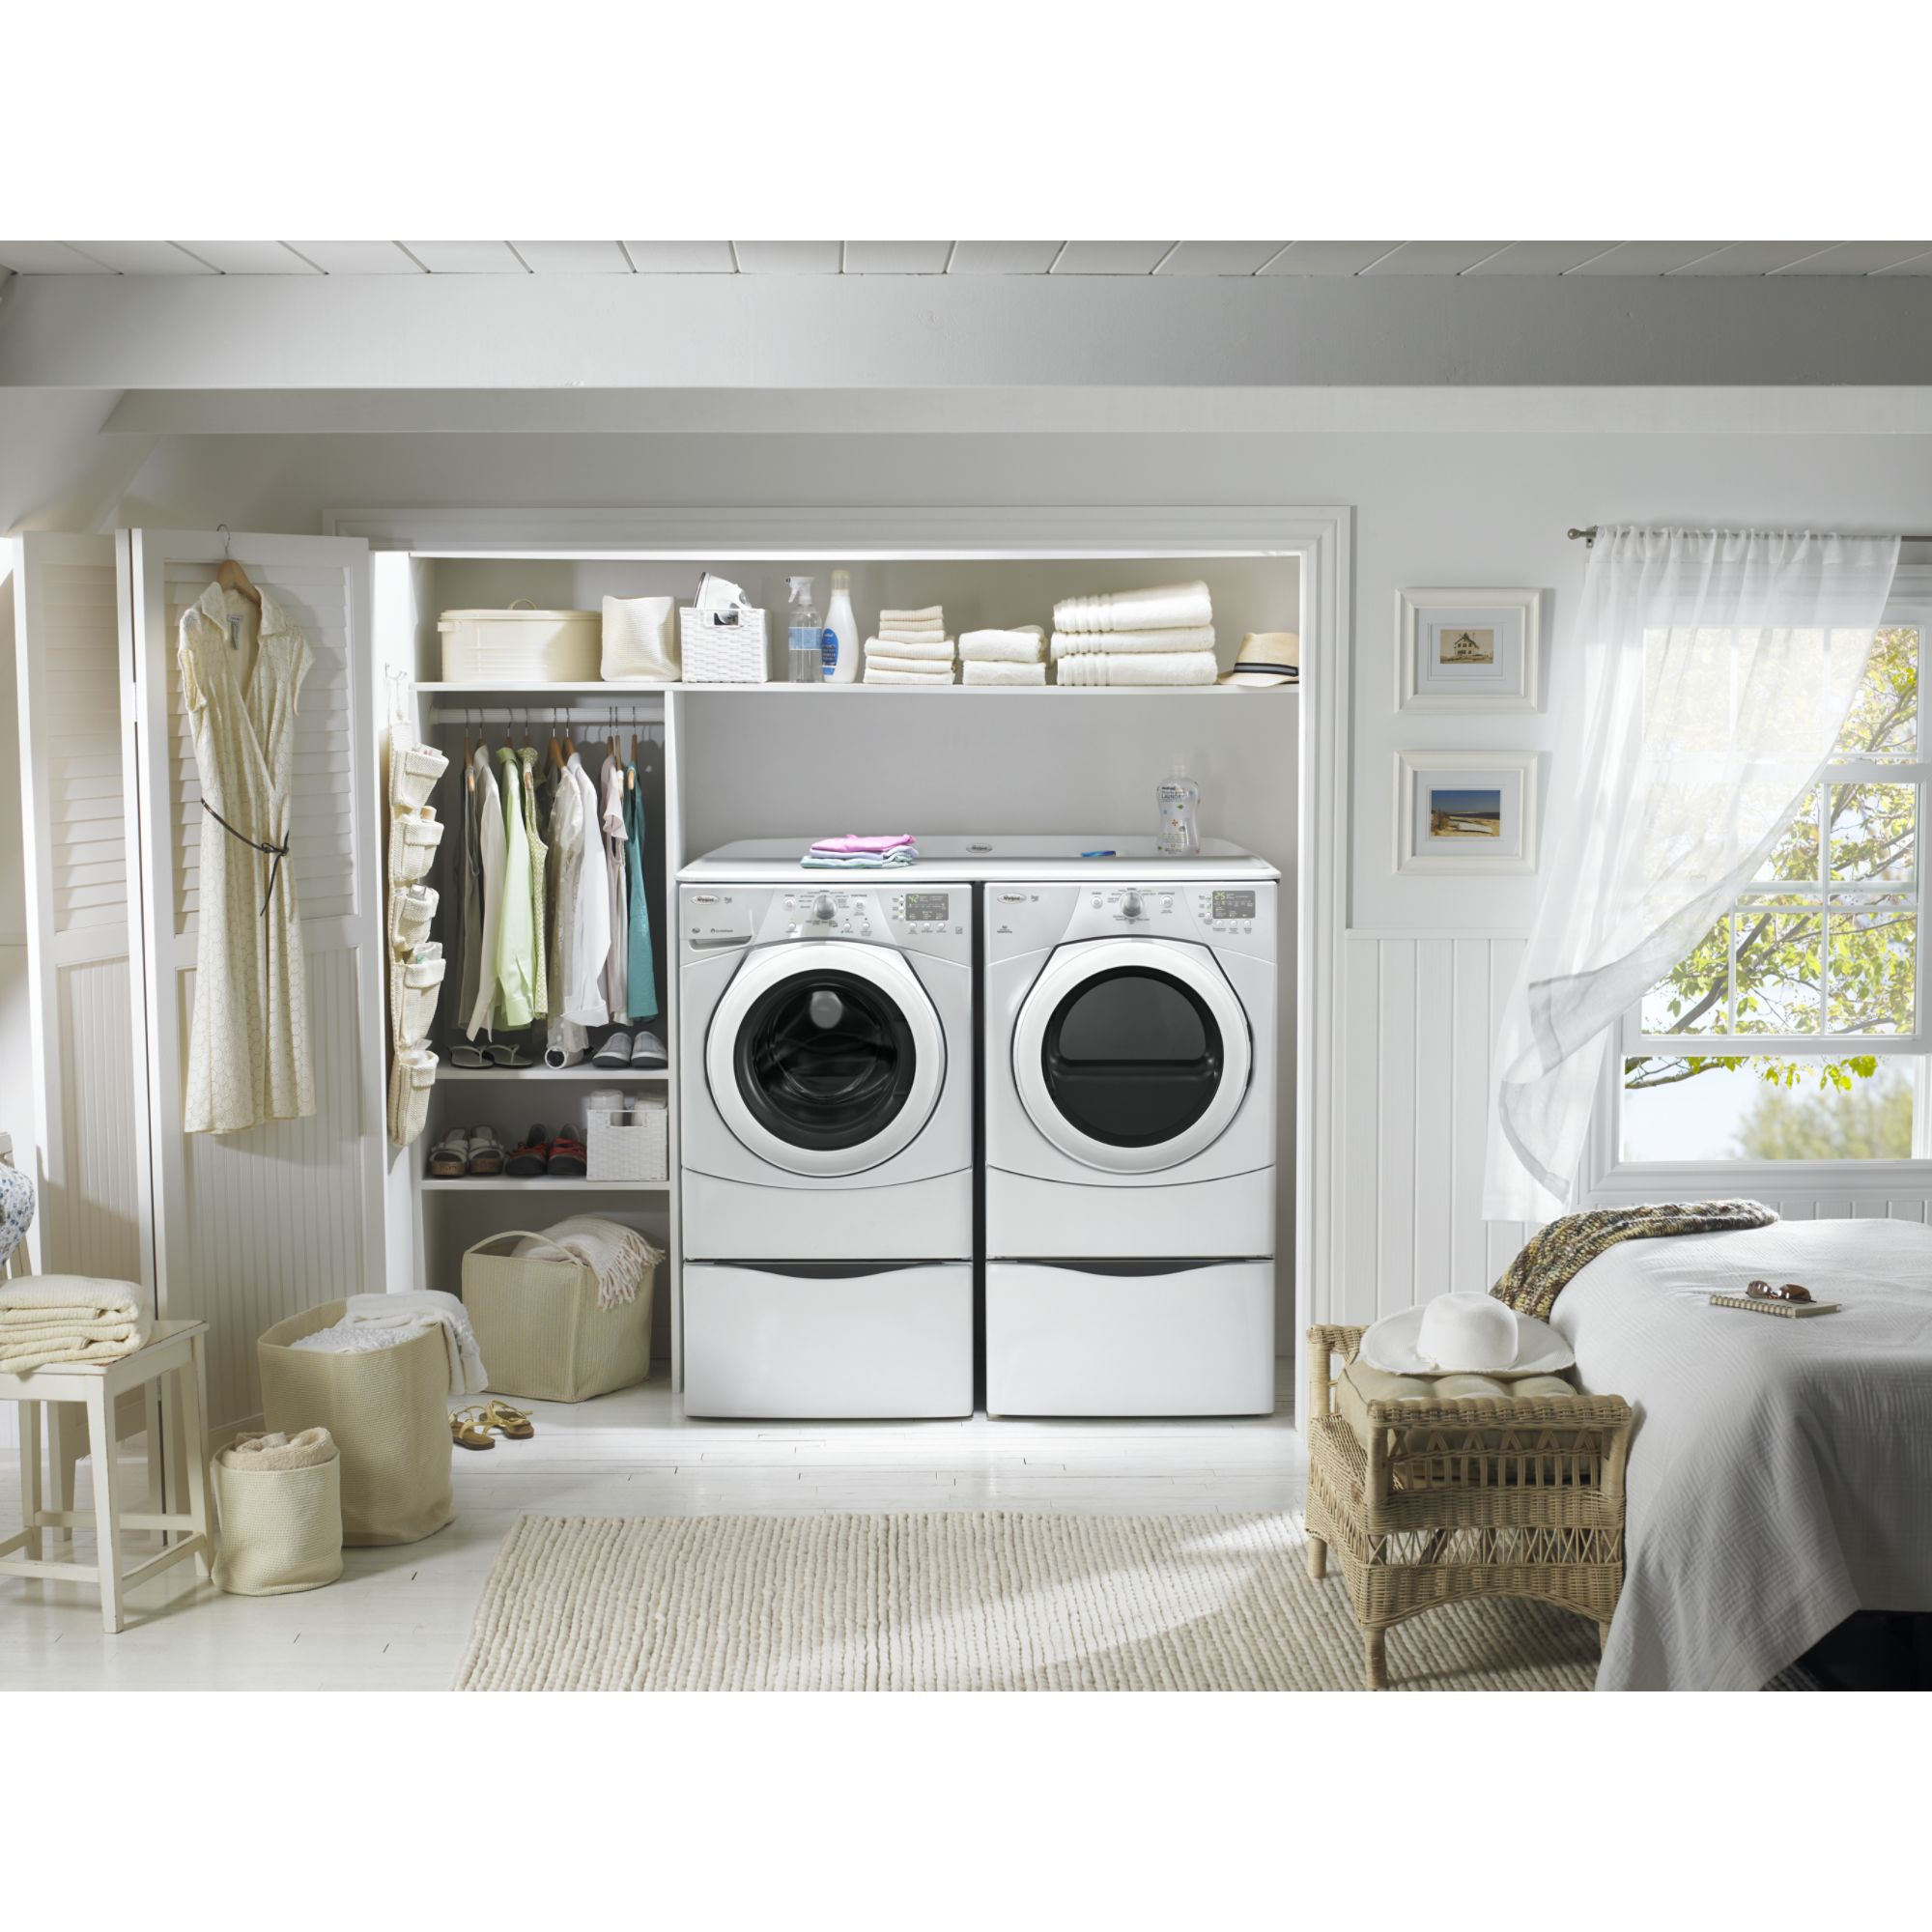 Whirlpool 6.7 cu. ft. Gas Dryer  - White